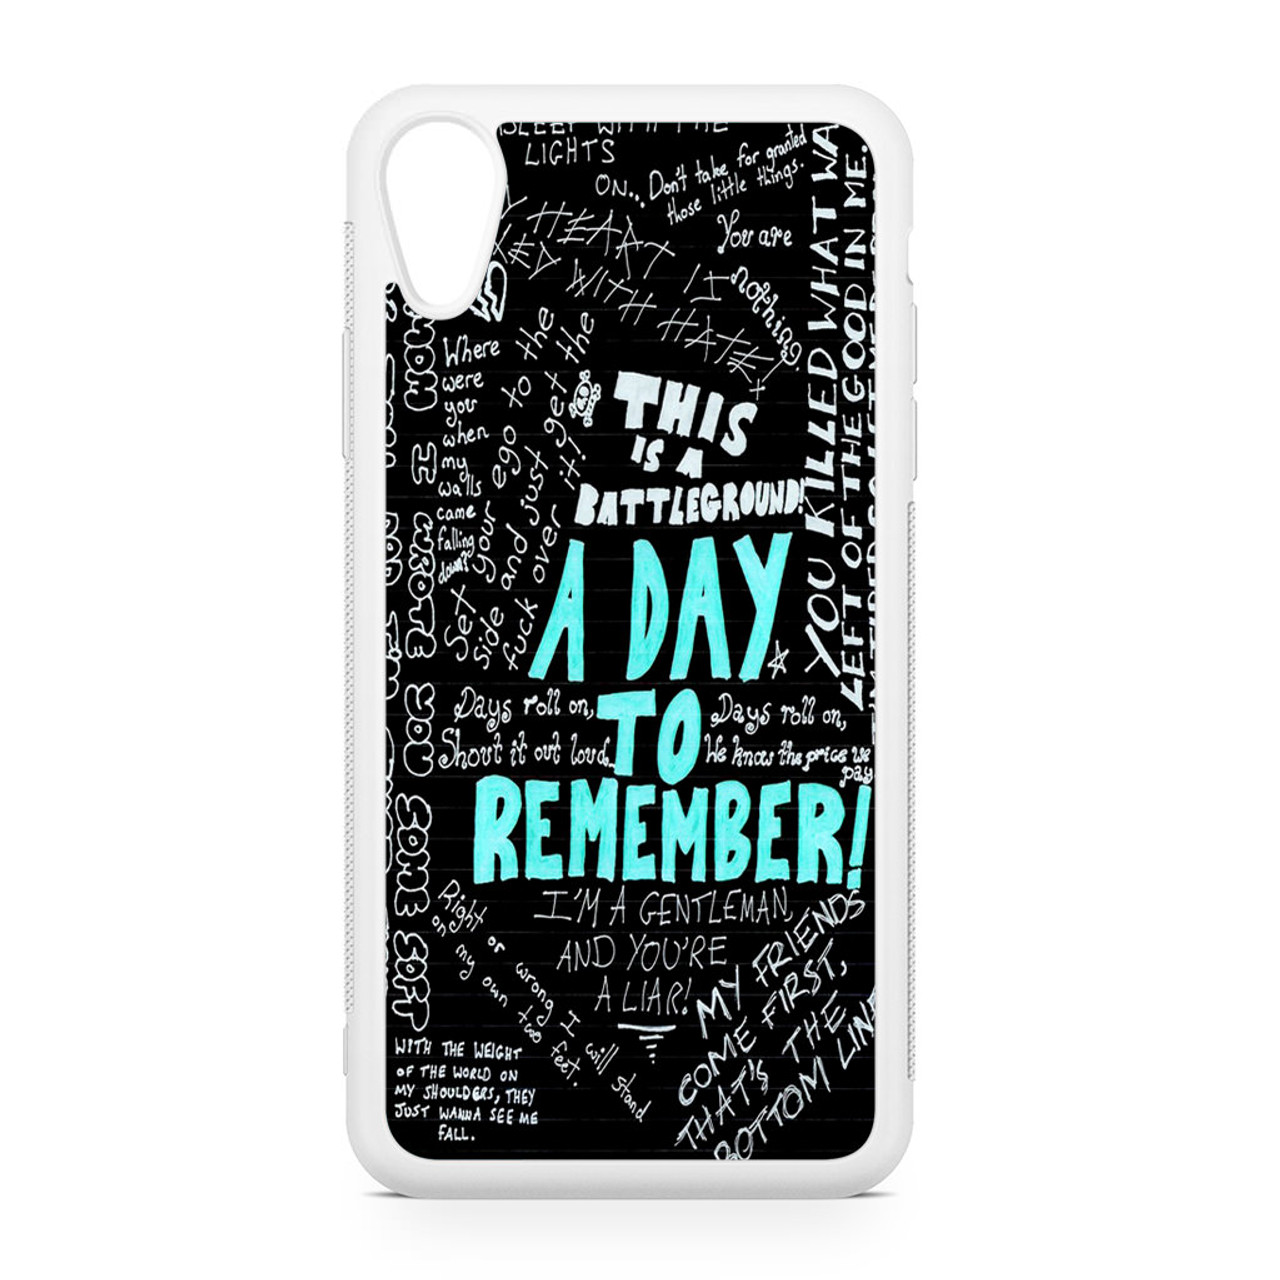 wrong reasons QUOTE iphone case